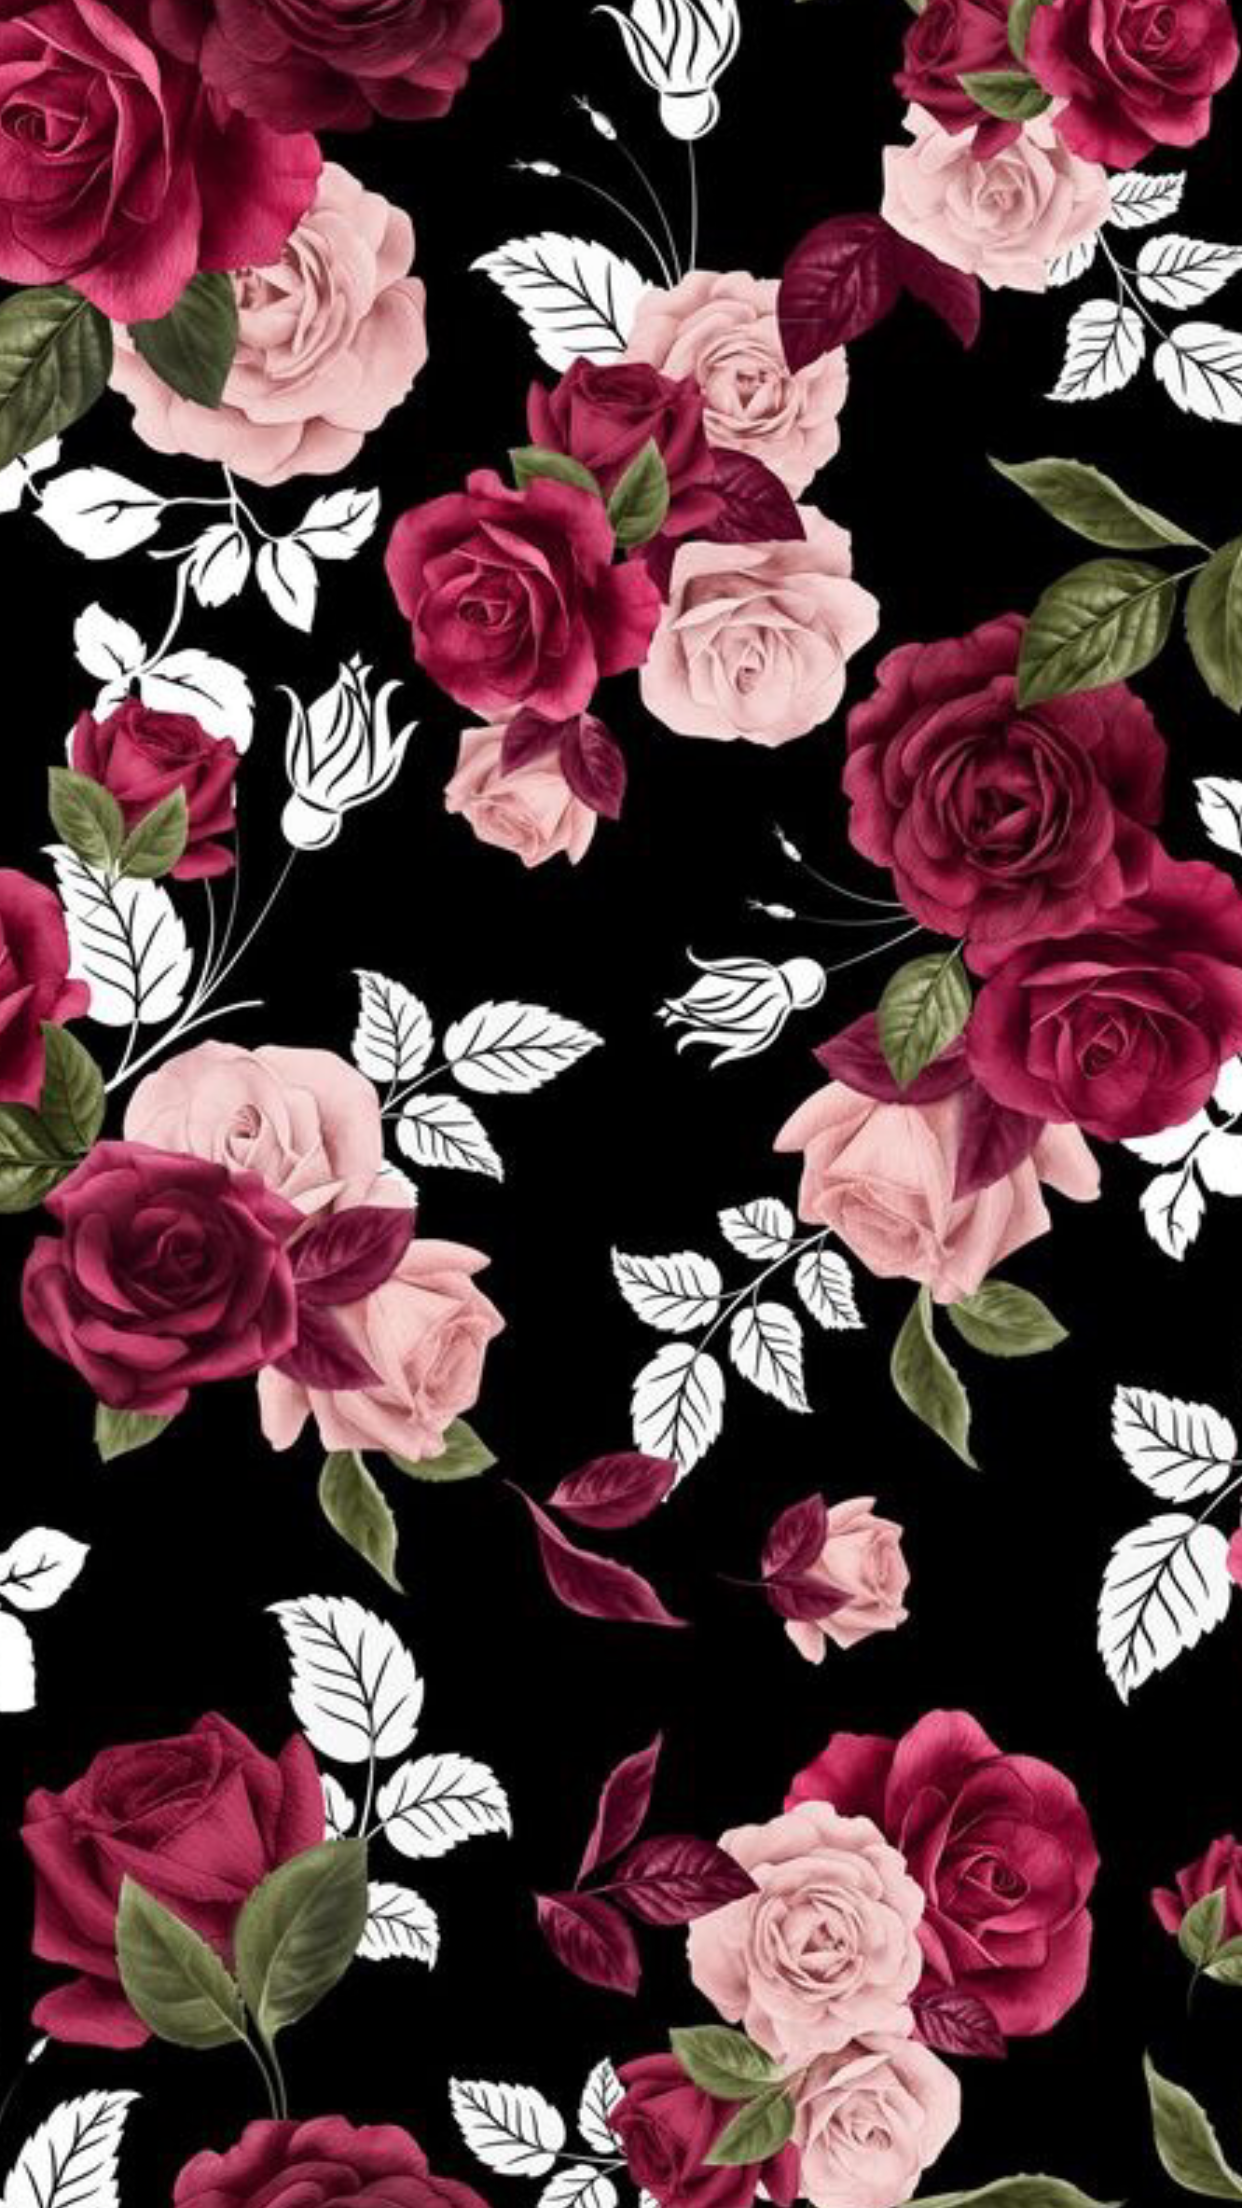 Pin by Miah Biney on Wallpapers iPhone Flower phone